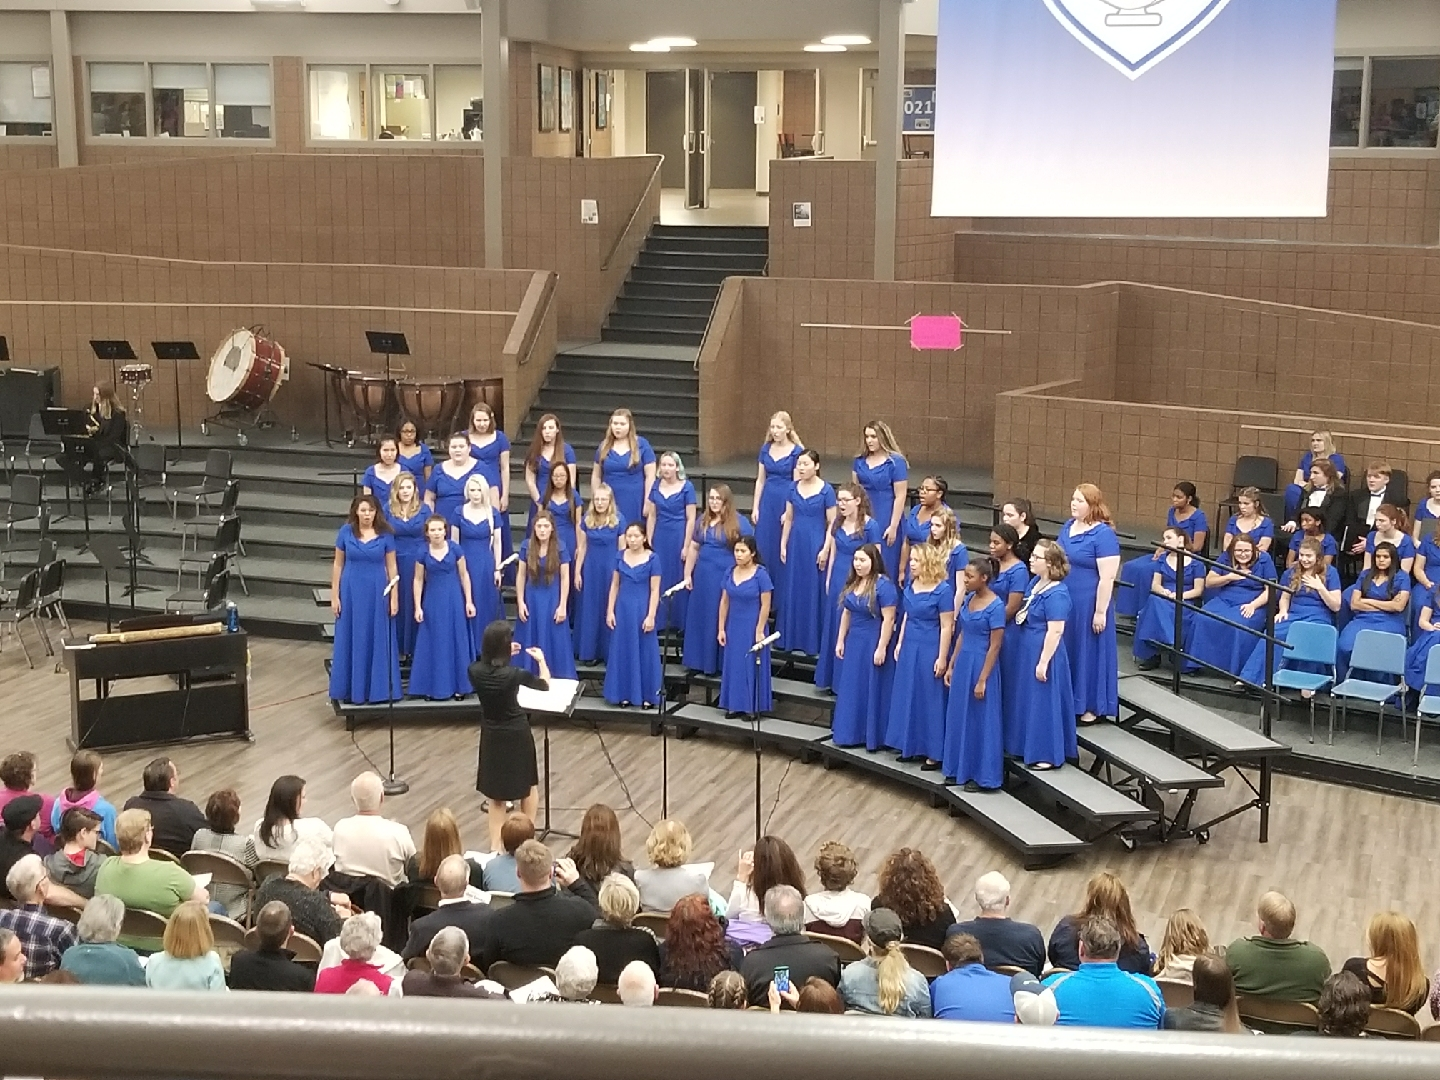 Chorale choir performs one of their well-rehearsed songs at the Collage Concert. Photo courtesy of Eileen Brennan.